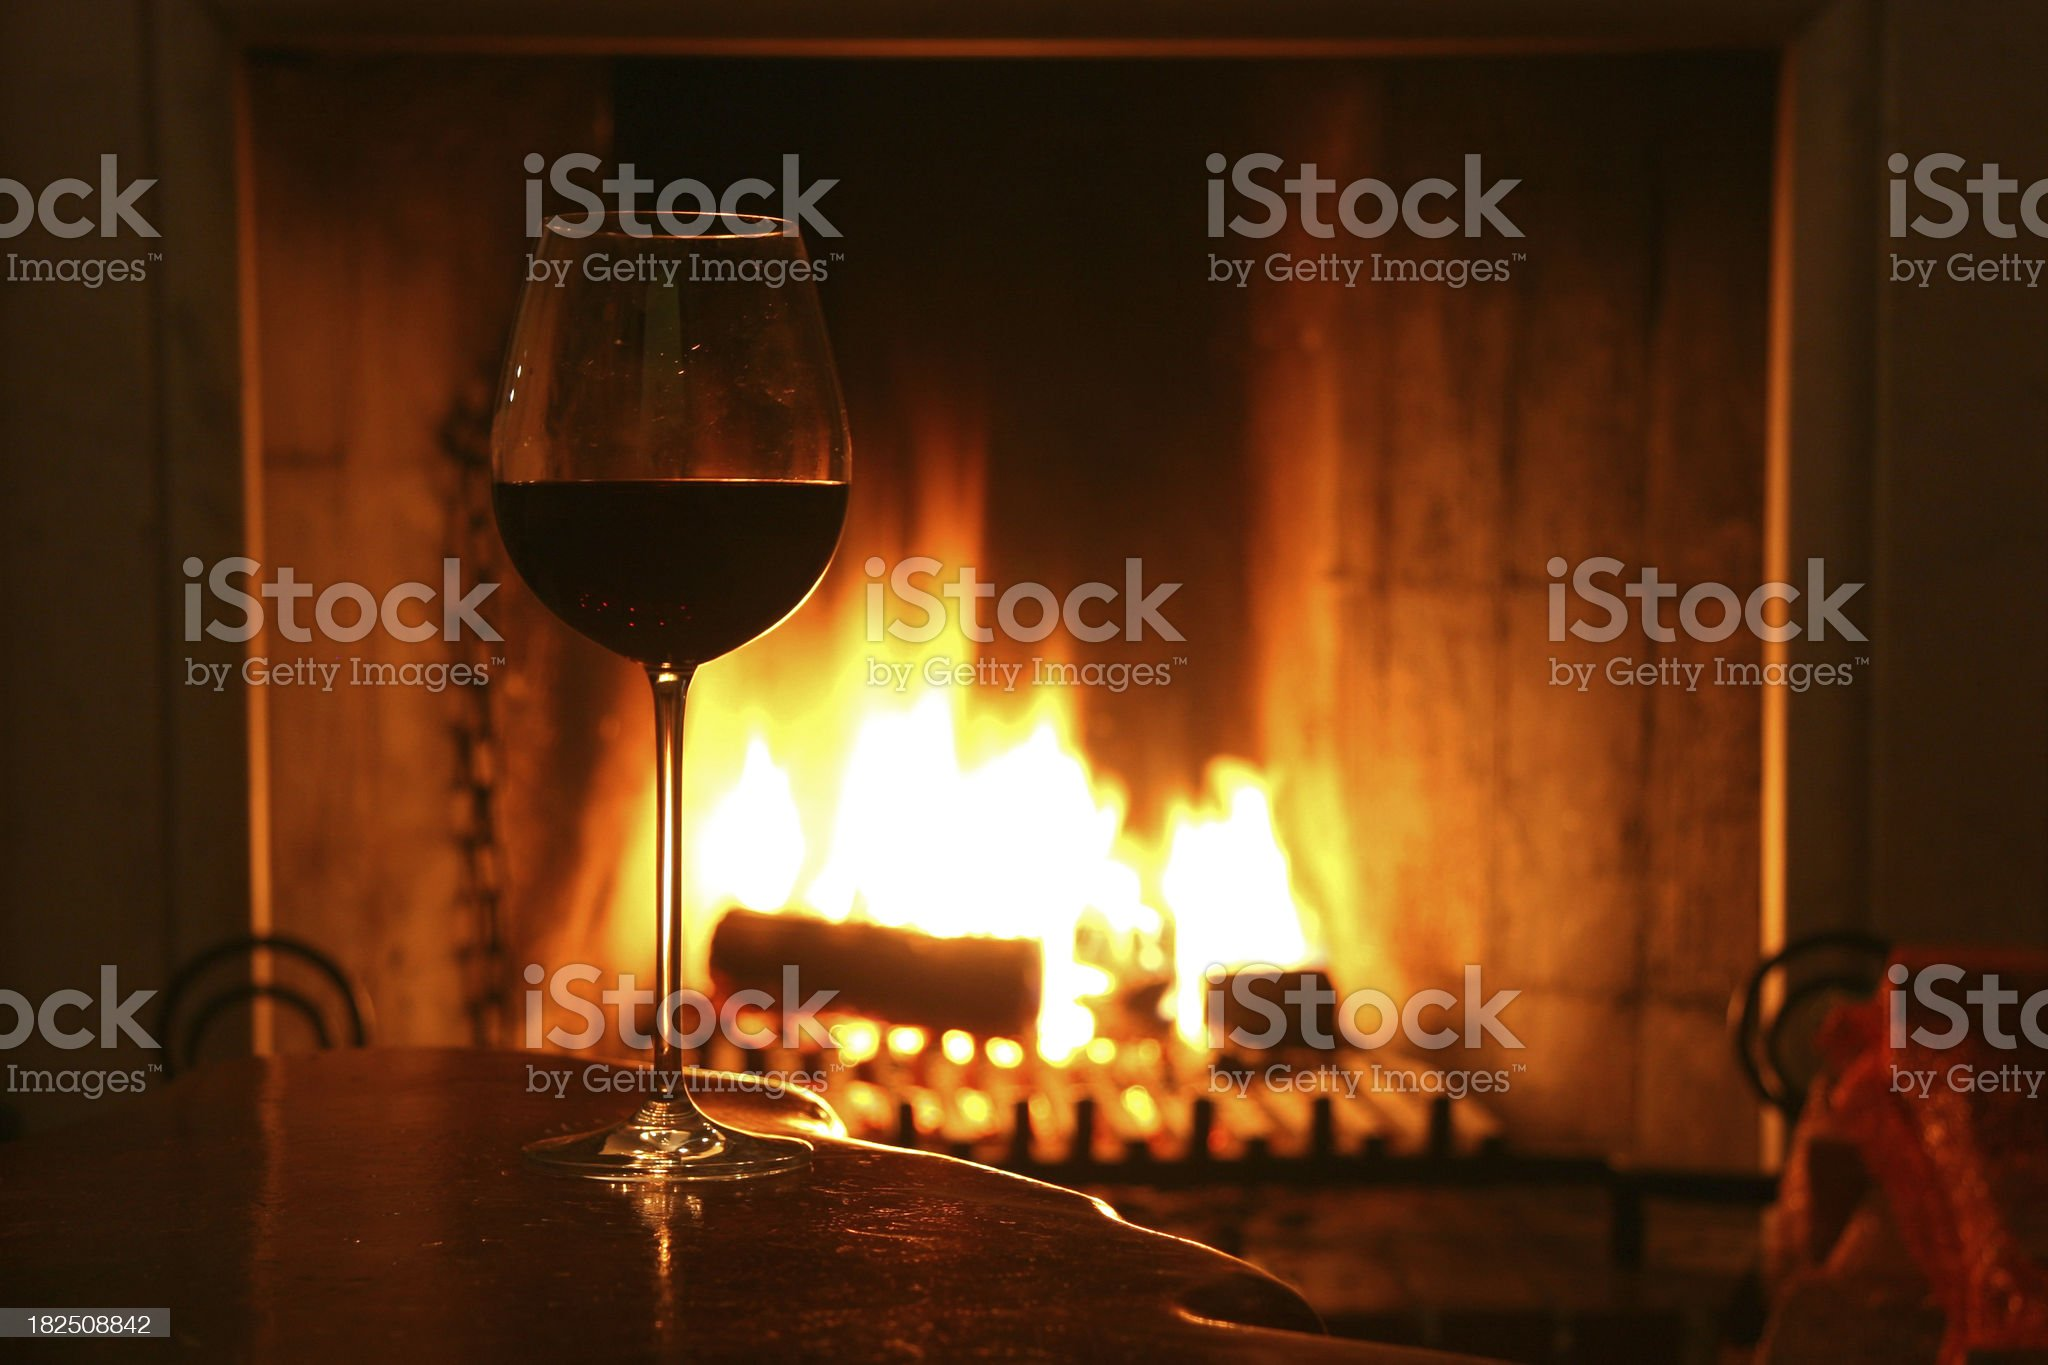 A single glass of wine by a fireplace royalty-free stock photo